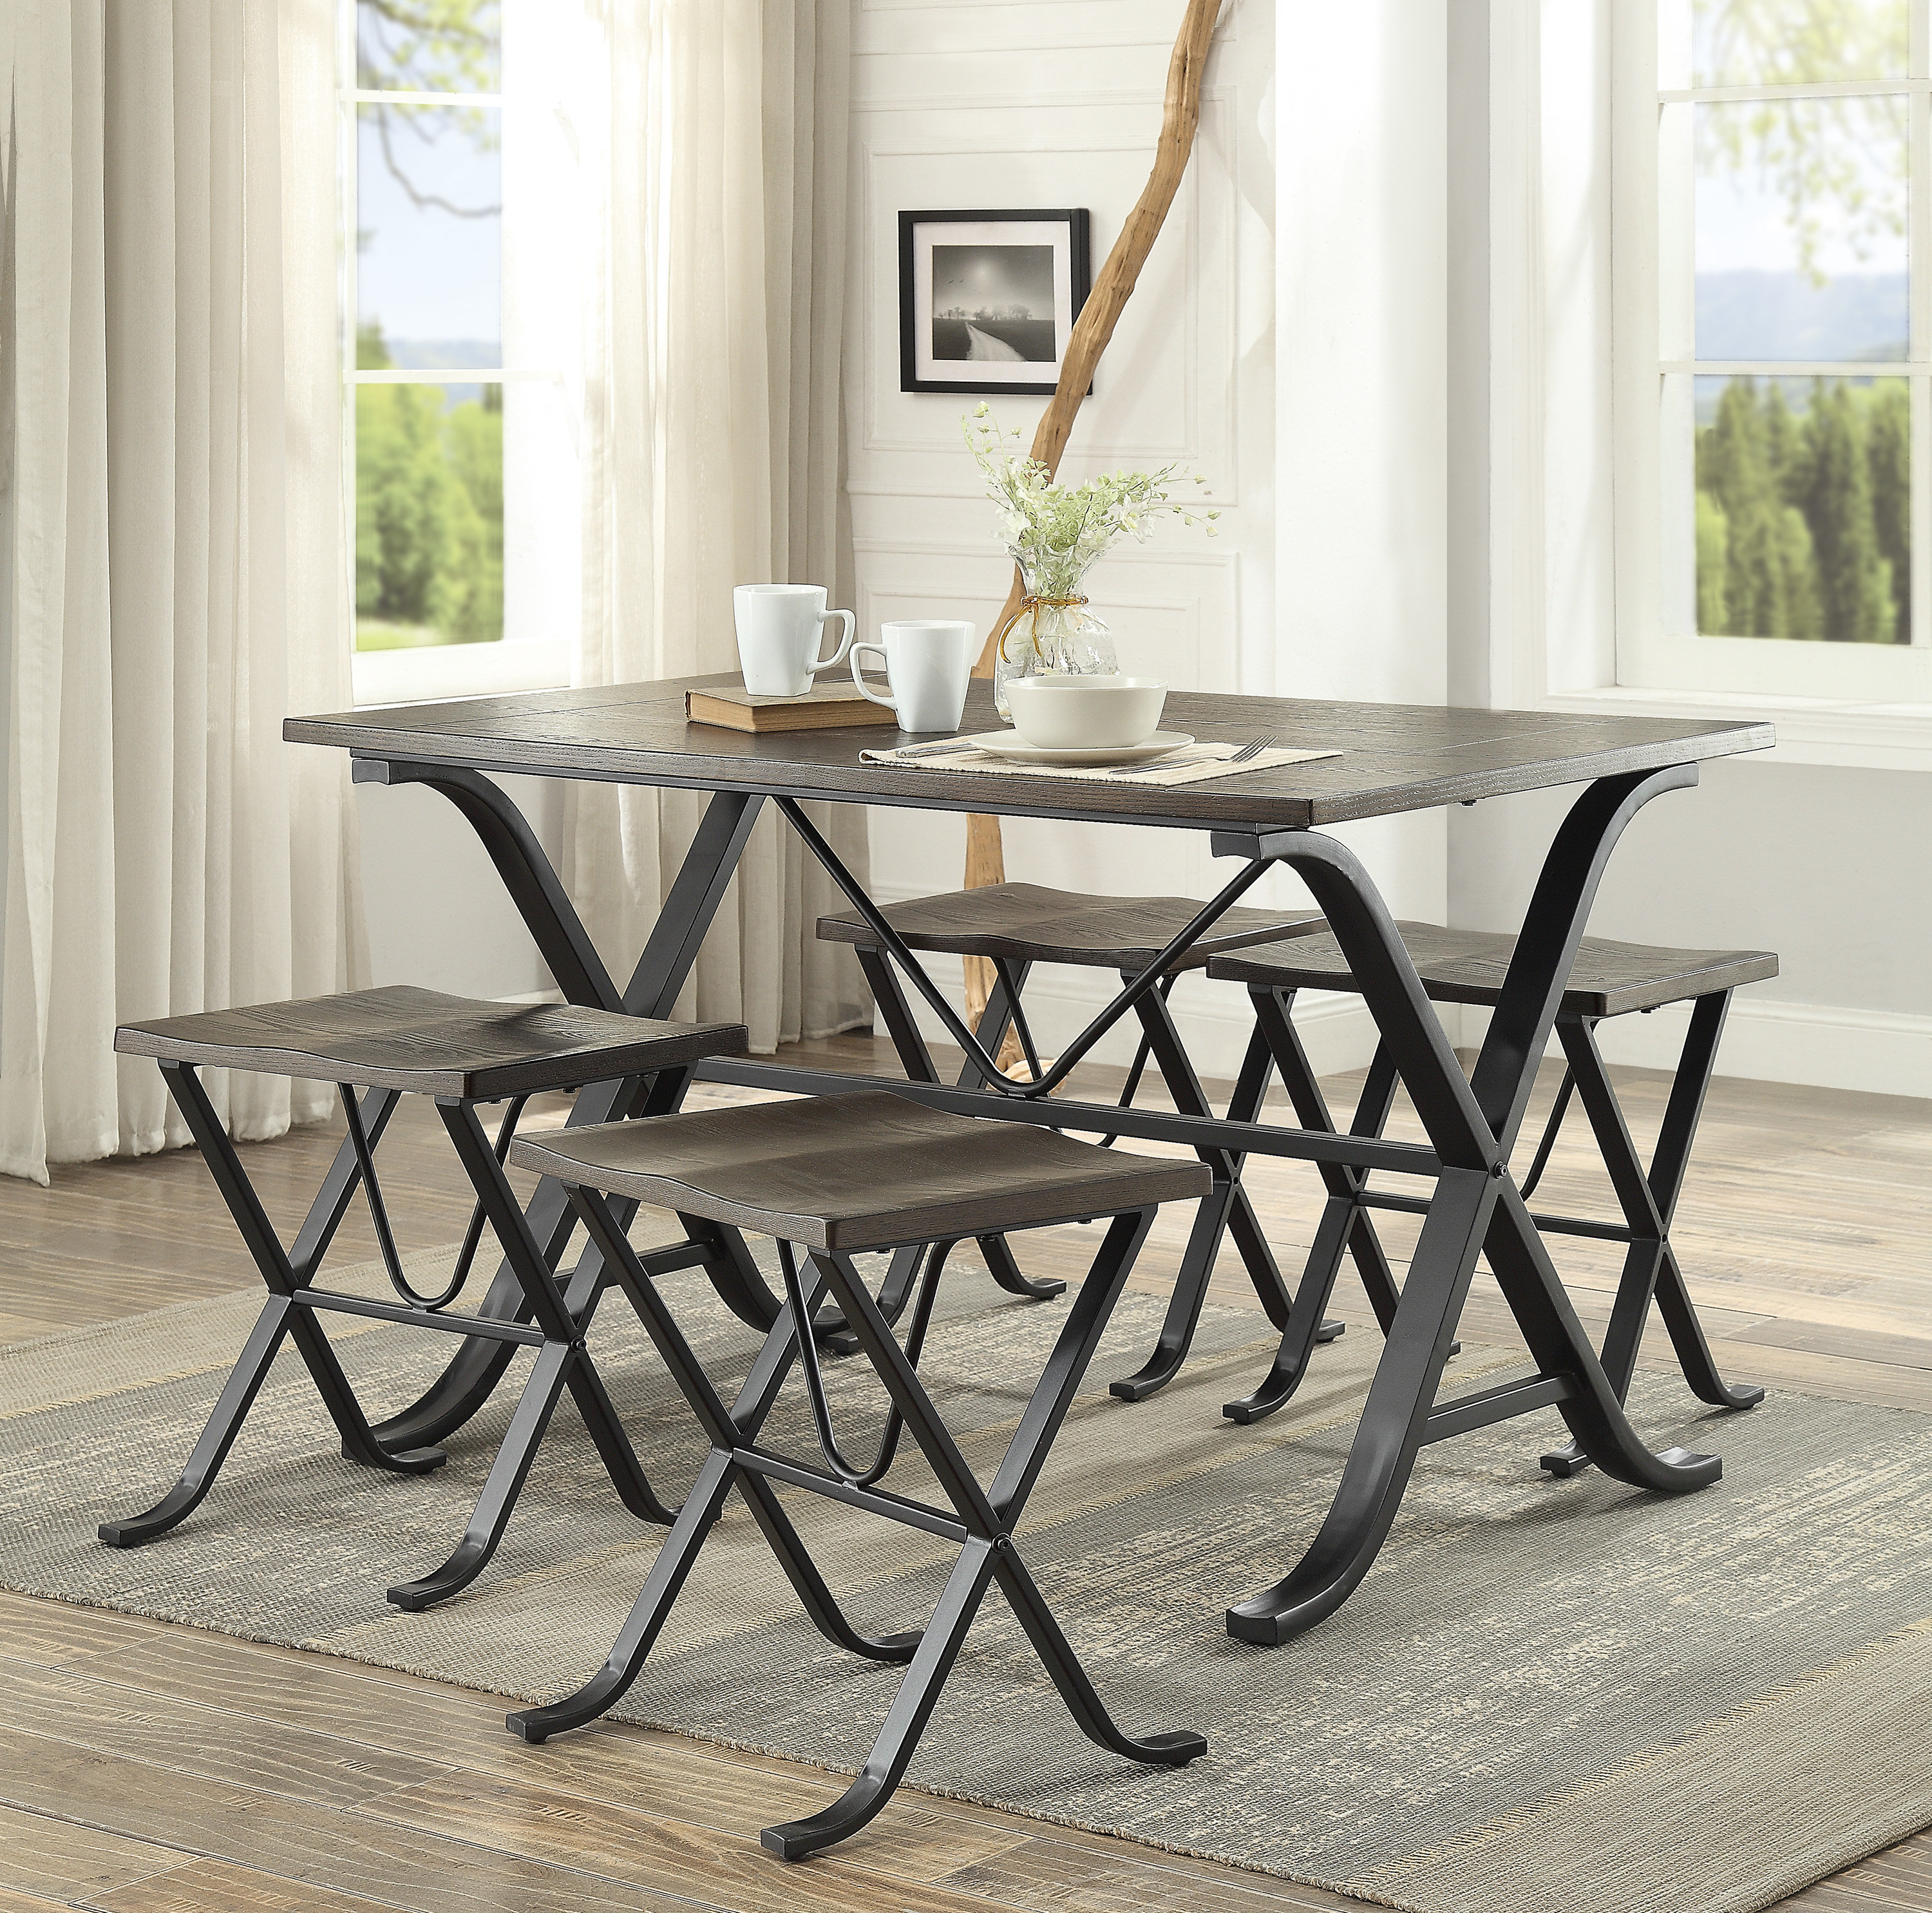 Wayfair With Most Up To Date Middleport 5 Piece Dining Sets (View 20 of 25)